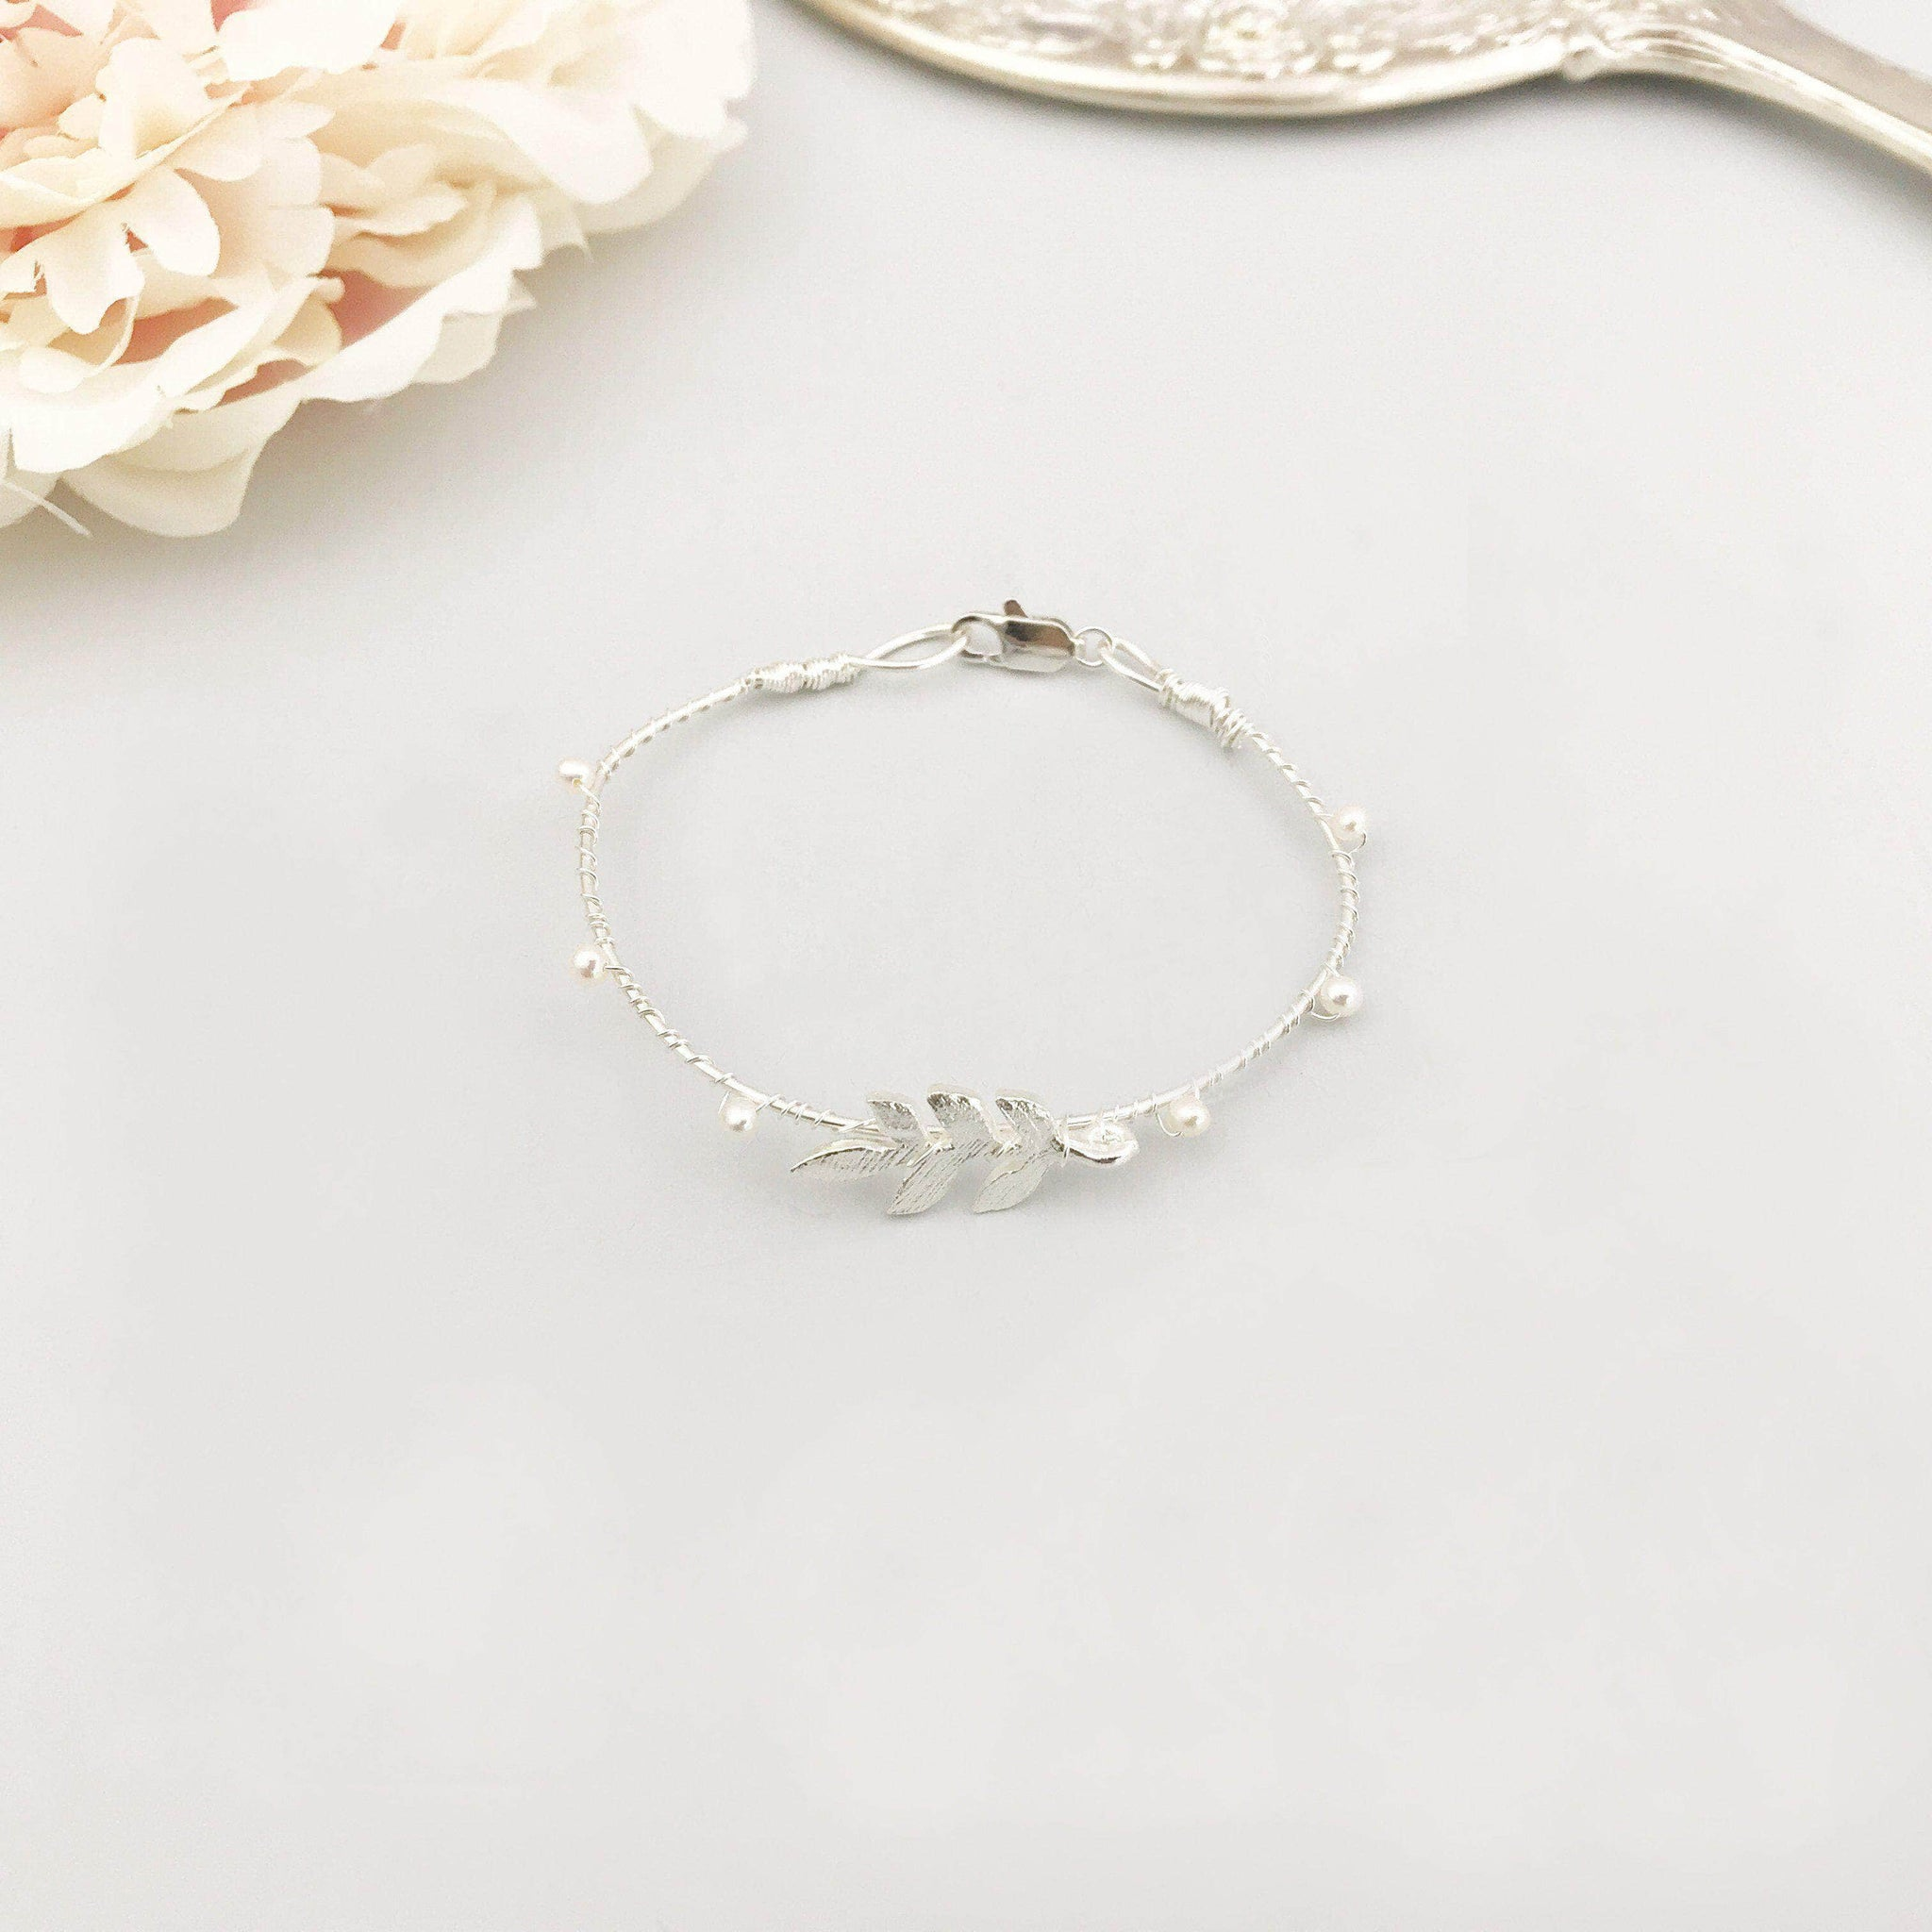 wgp angelic wedding gift tennis day with itm bracelet swarovski a bridal myjs crystals